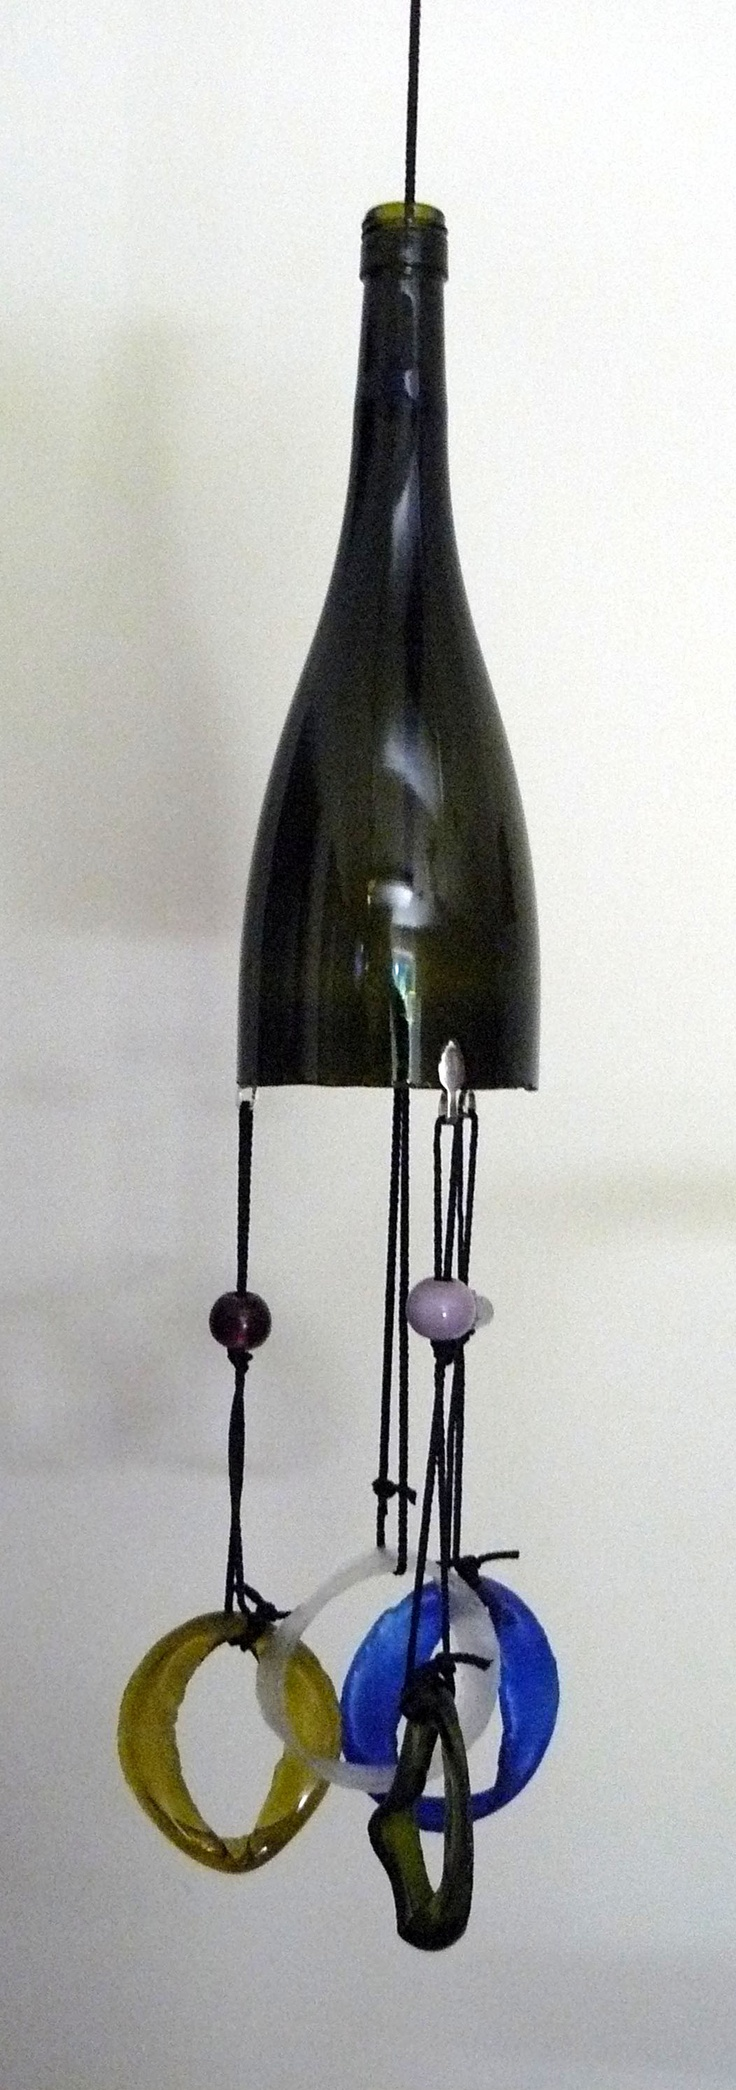 17 best images about wine bottle chimes on pinterest